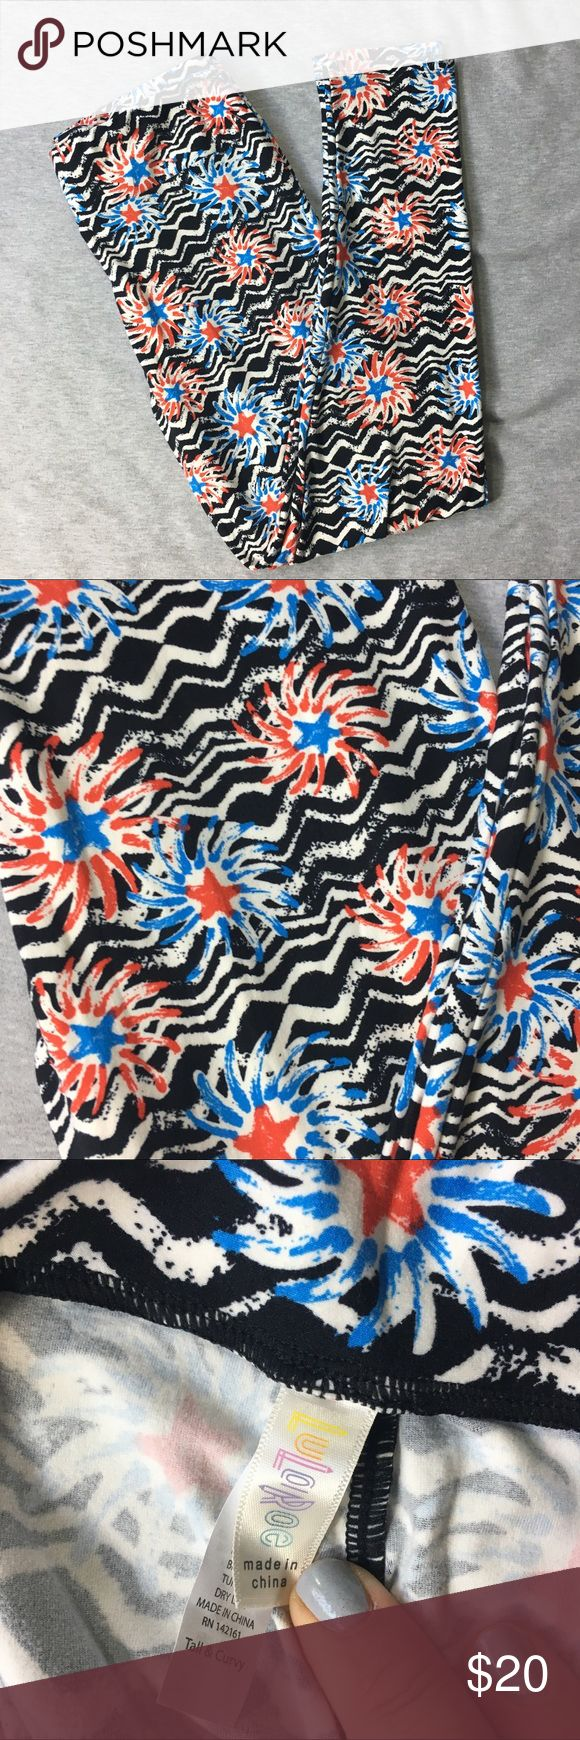 NWOT Lularoe 4th of July TC One Size Legging New with out tags pair of Lularoe leggings in a 4th of July print with stars and stripes. No flaws to note. These have never been worn and never been washed. Let me know if you have any questions. I'm a very fast shipper and love to make deals on bundles. <3 LuLaRoe Pants Leggings